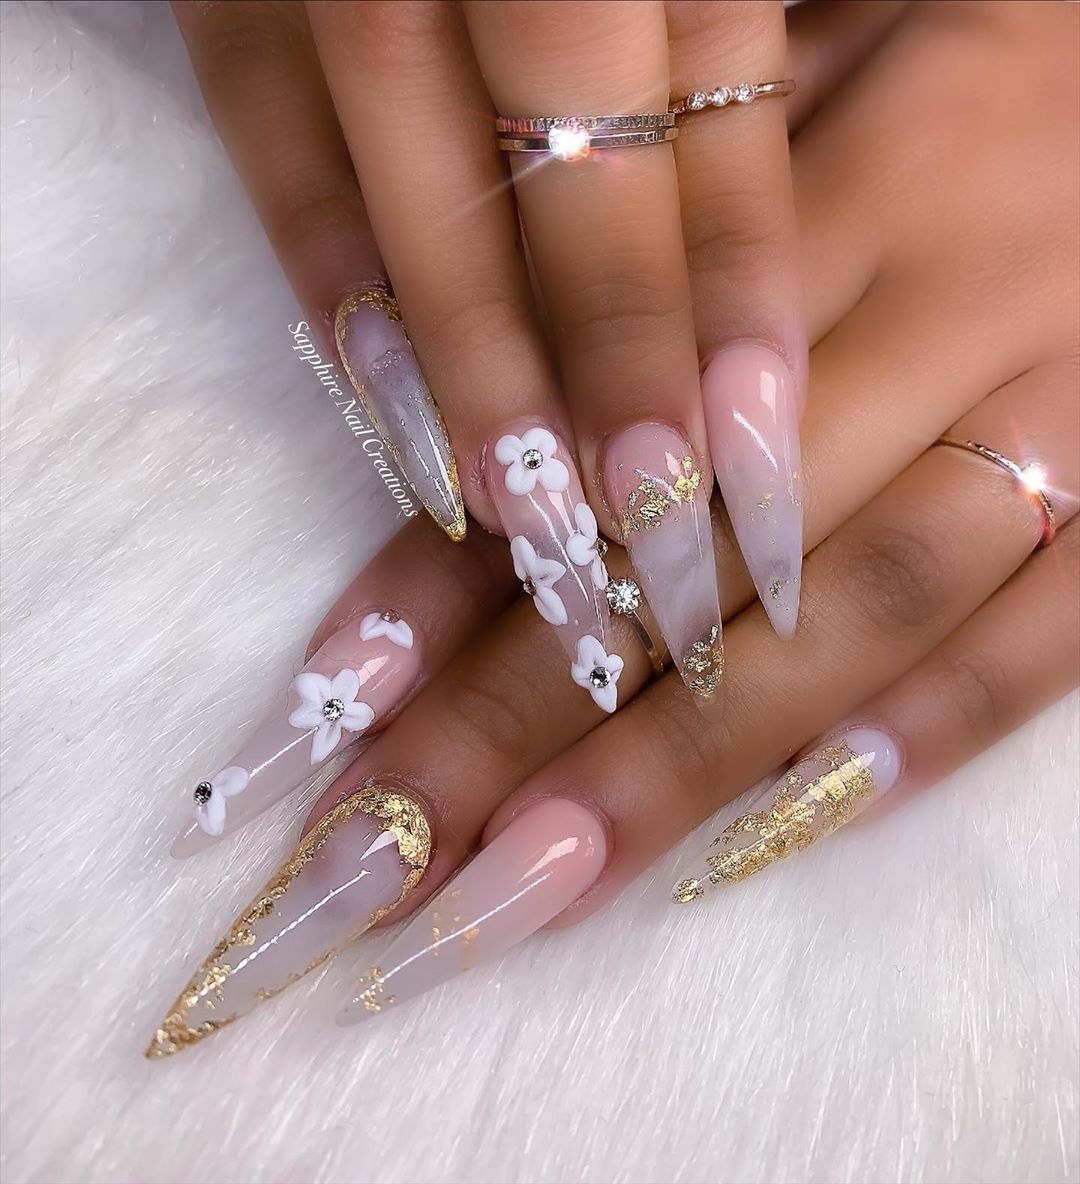 Acrylic Nails Stick On Nails On Instagram Sometimes We Go For Stiletto Nails Sapphirenailcreations Art N Stick On Nails Sapphire Nails Nails